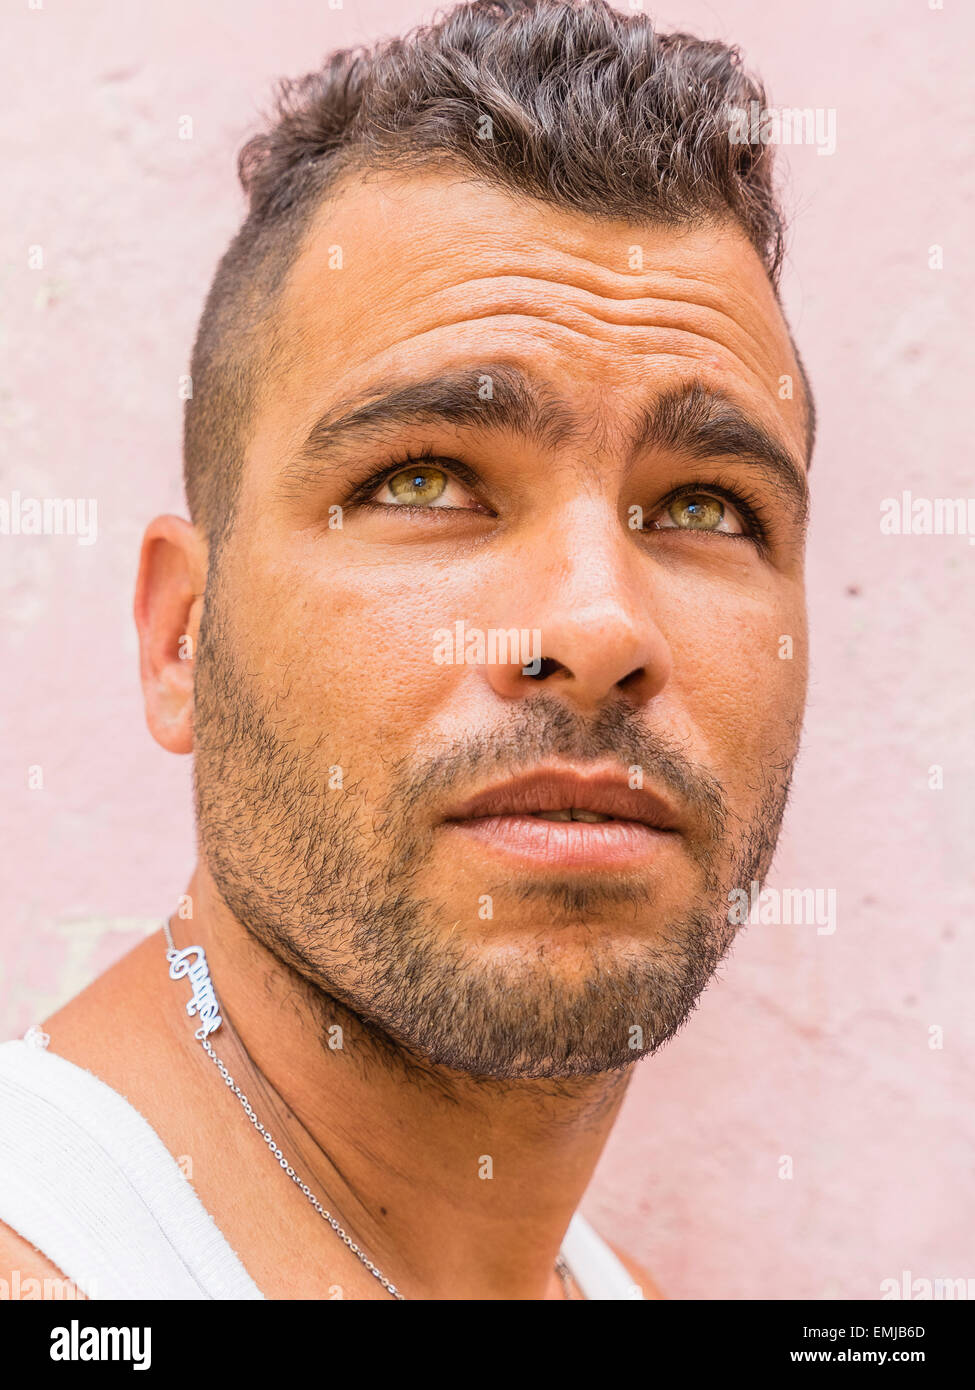 close-up of the face of a 20-29 year old hispanic cuban male with a